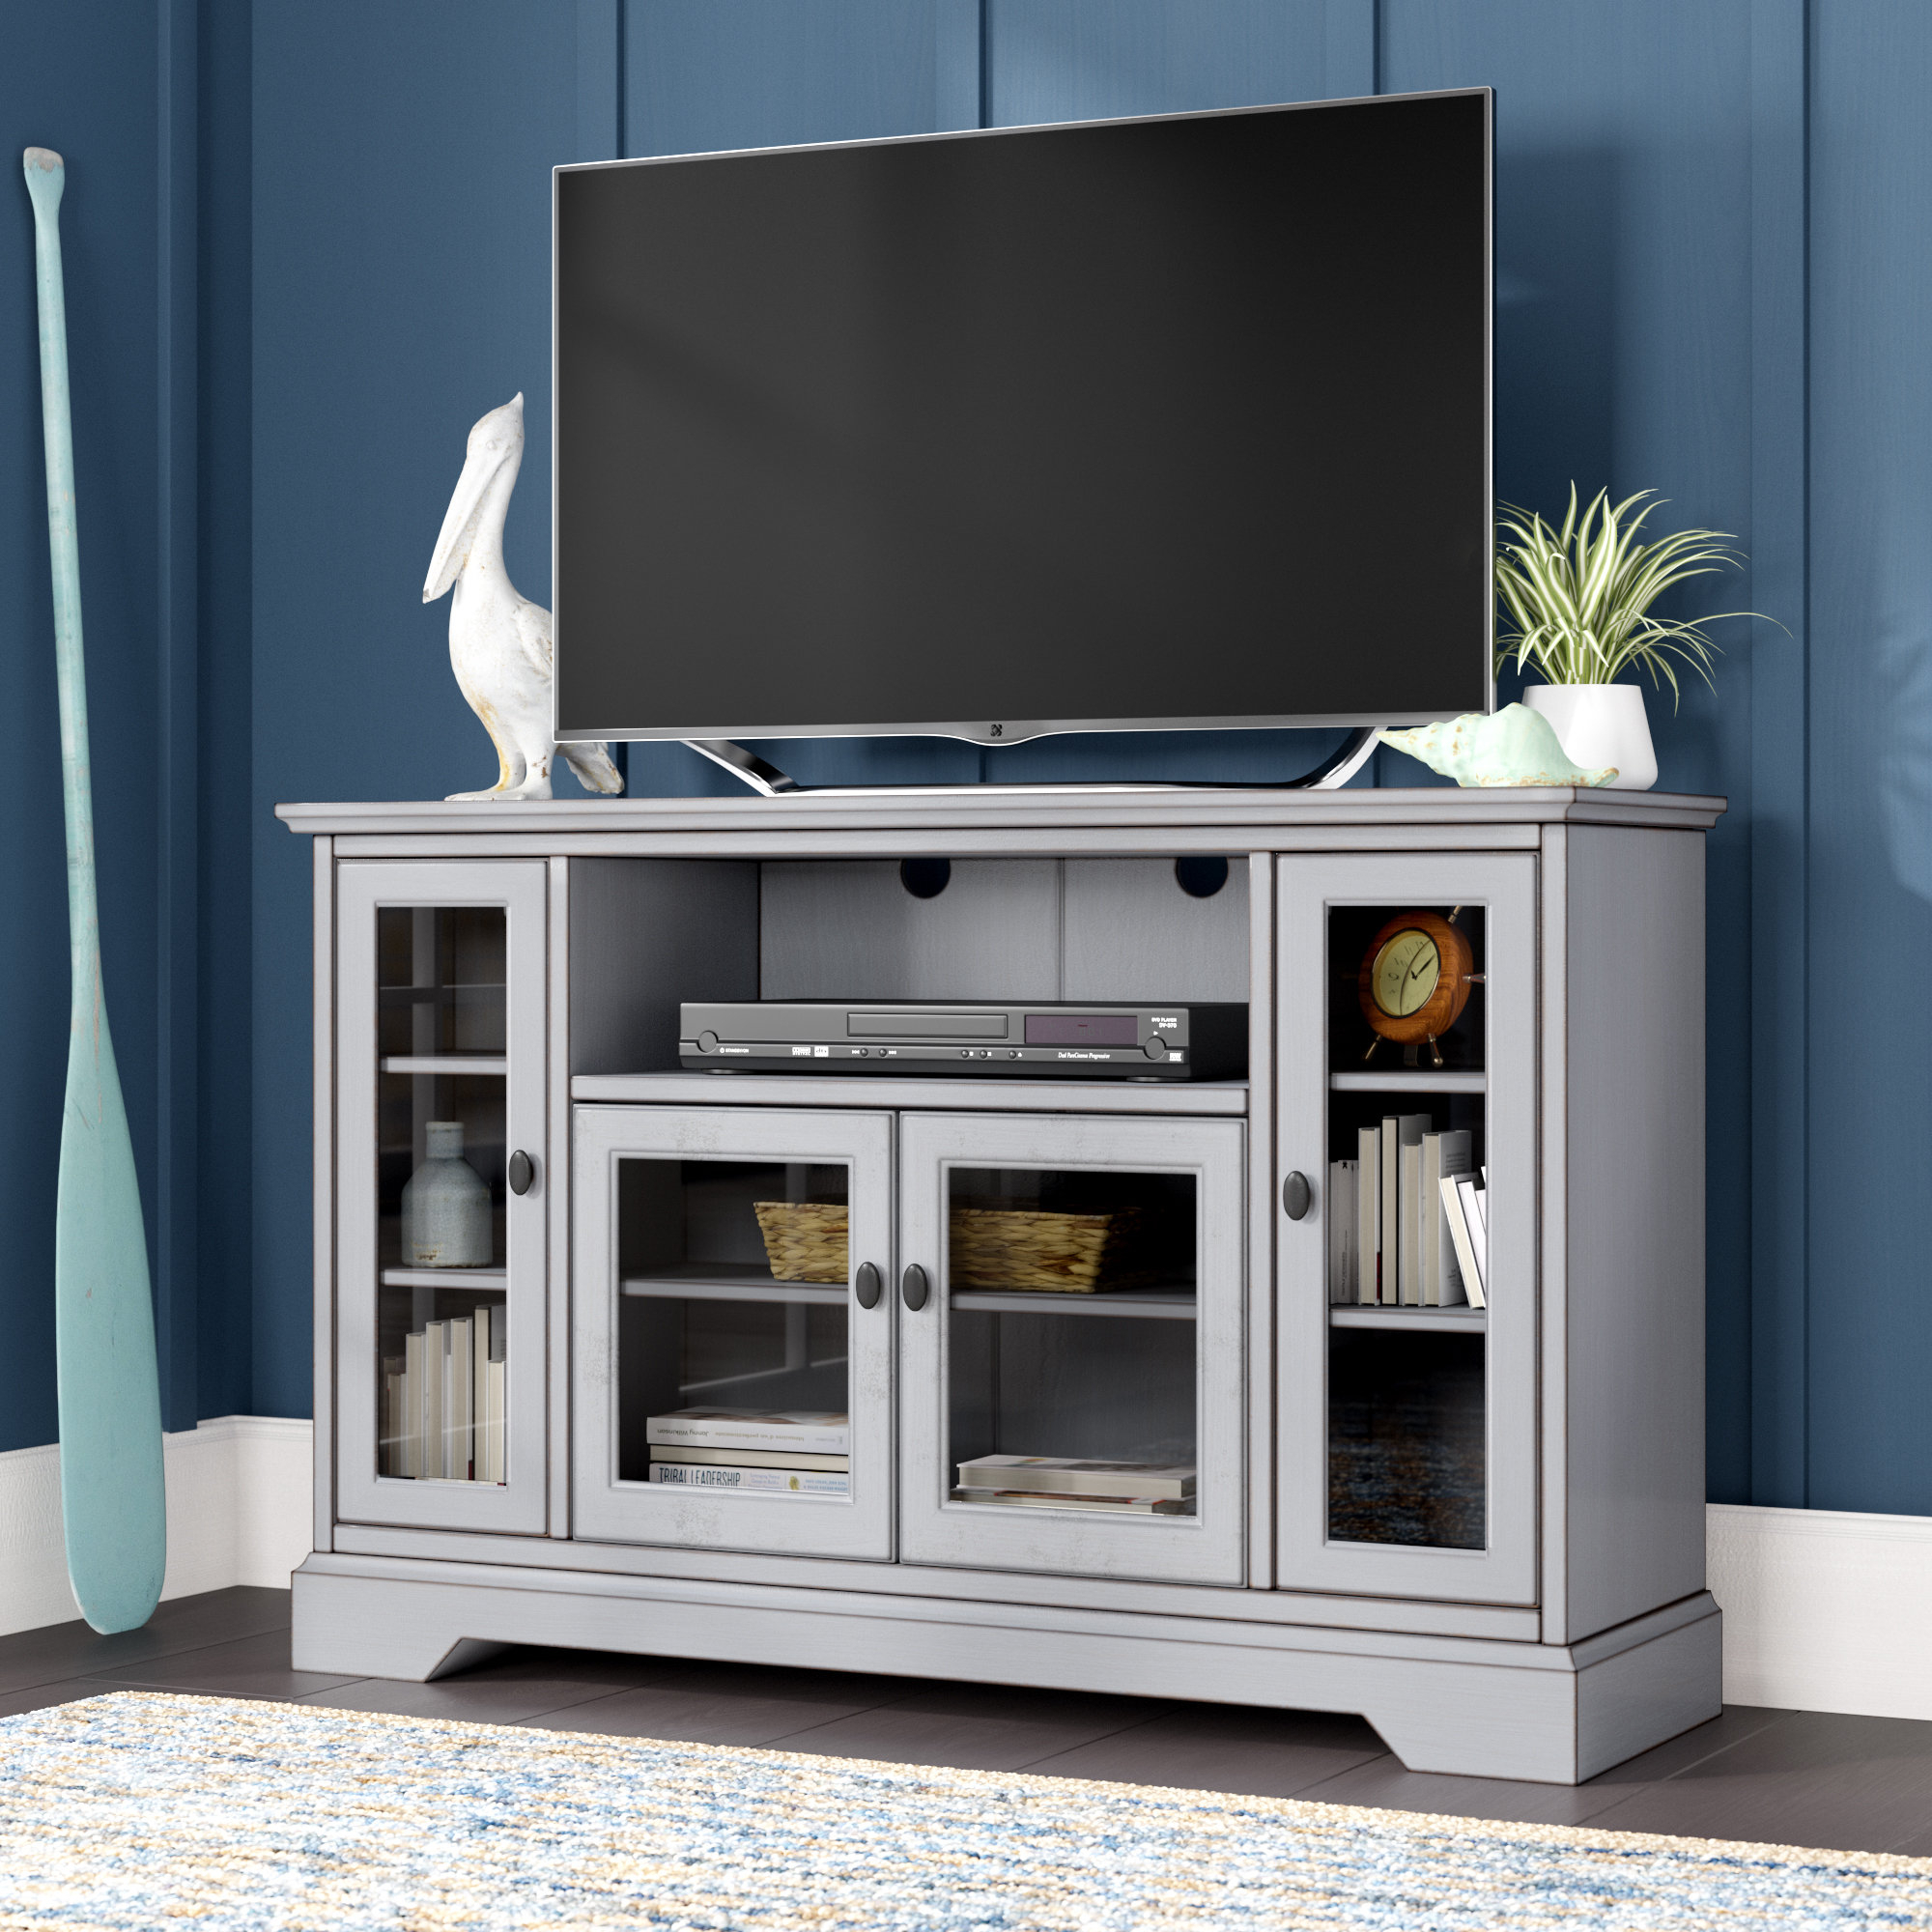 Tv Stands & Entertainment Centers You'll Love | Wayfair With Kenzie 72 Inch Open Display Tv Stands (View 7 of 30)